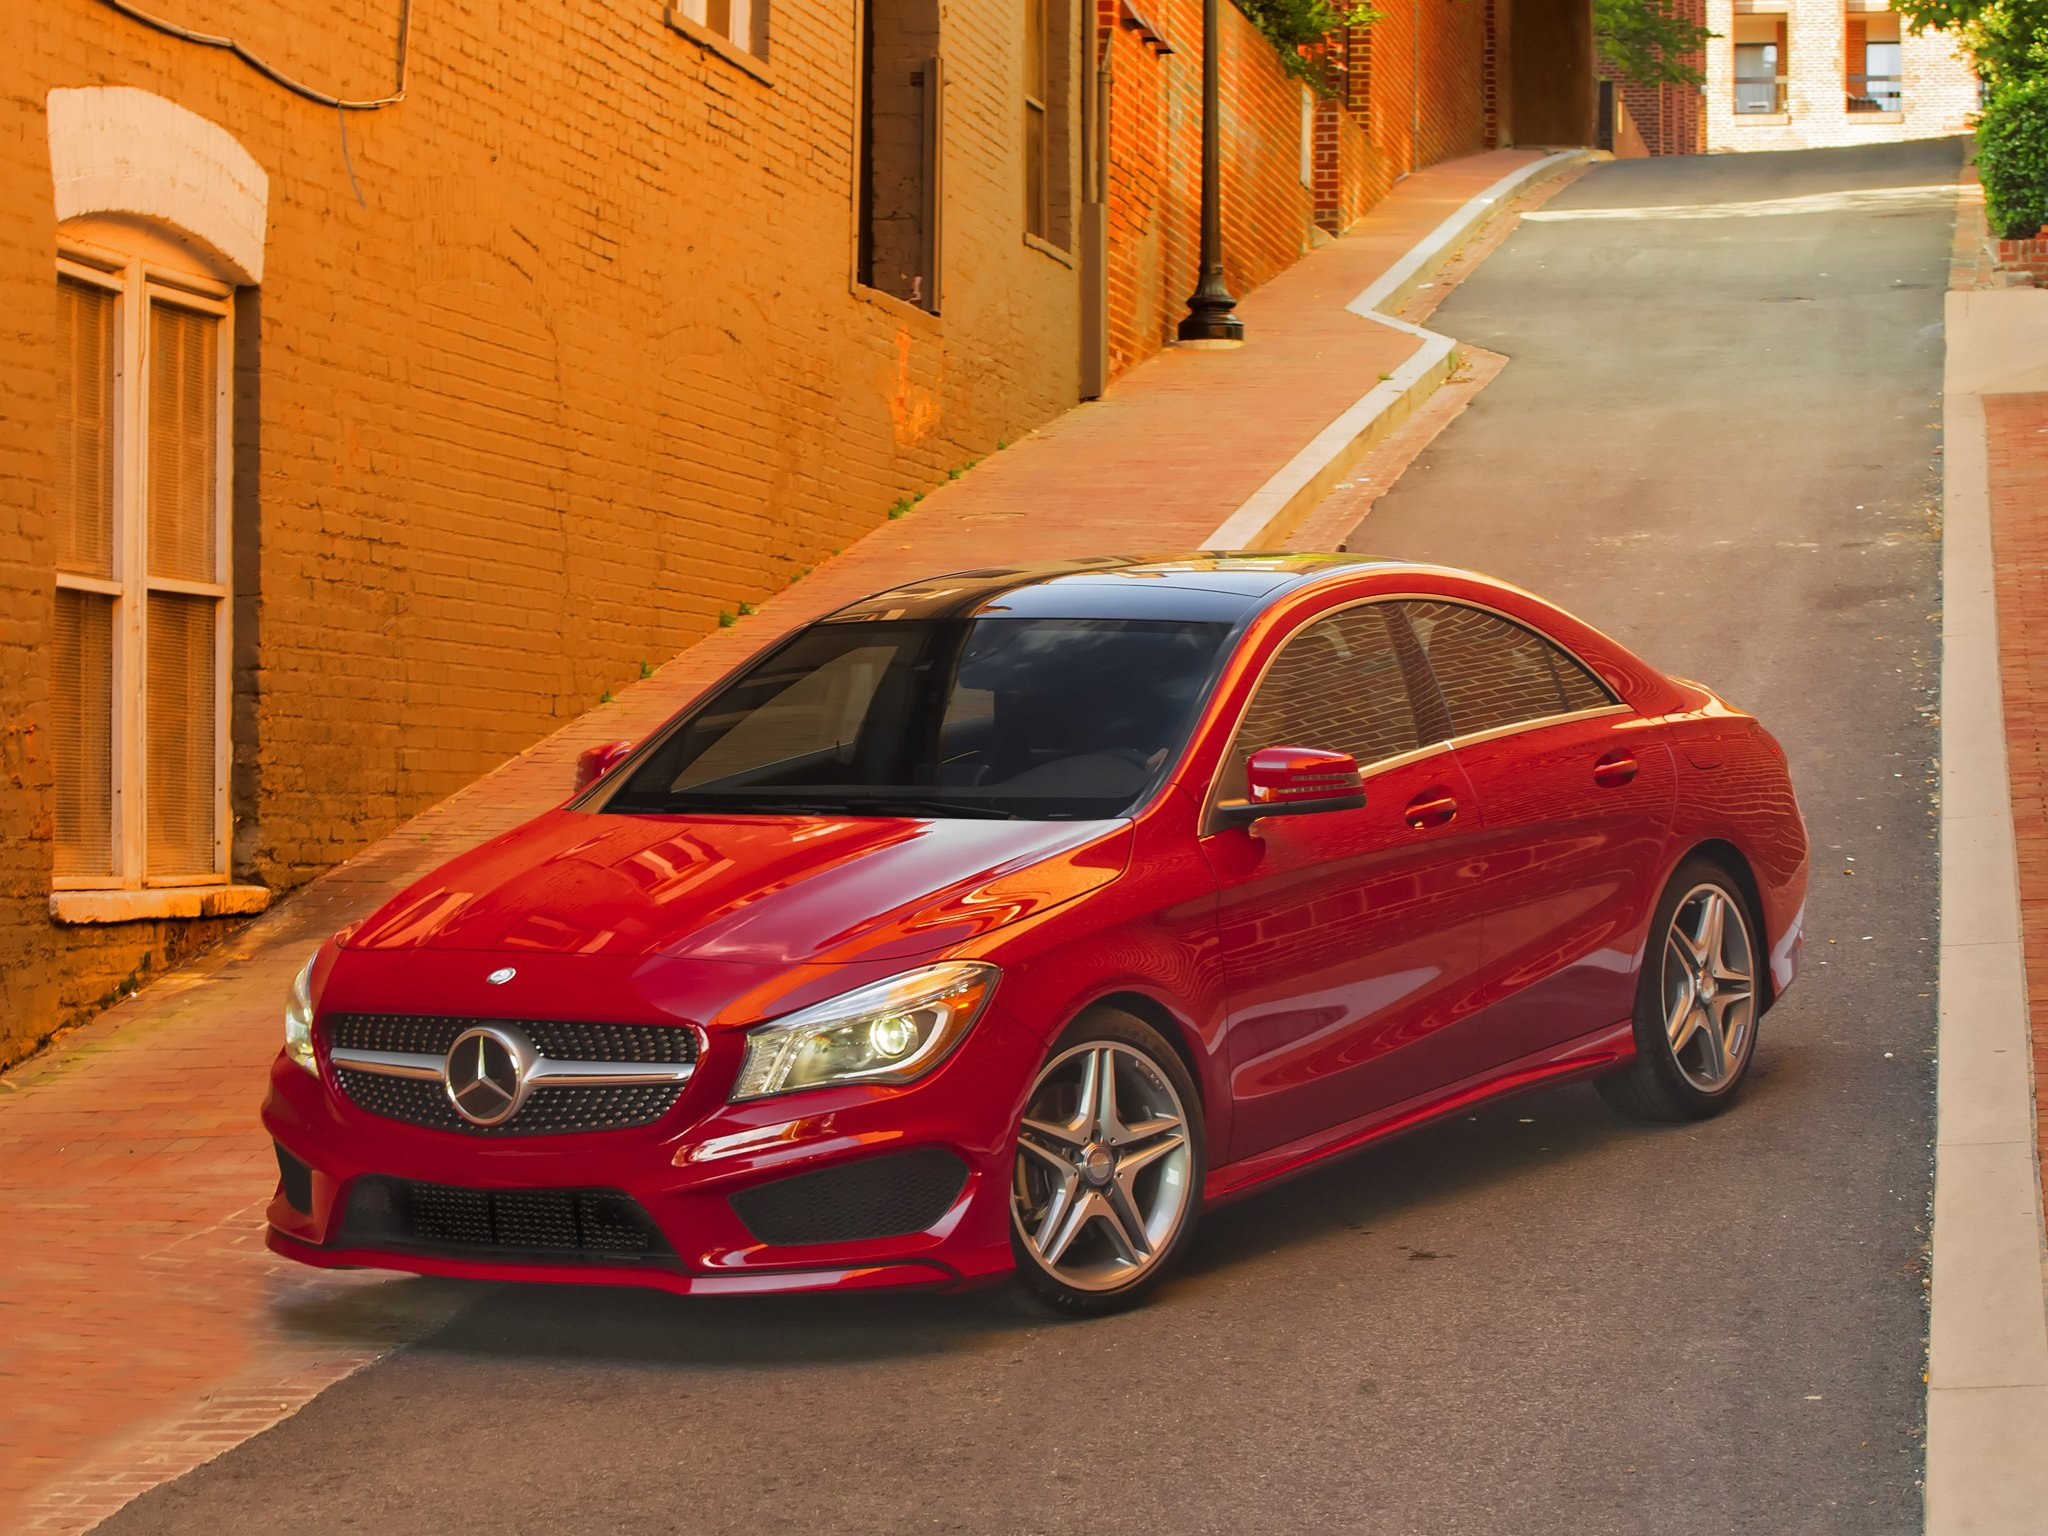 mercedes benz cla 250 amg sports package us spec c117 cars 2013 red wallpaper 2048x1536. Black Bedroom Furniture Sets. Home Design Ideas